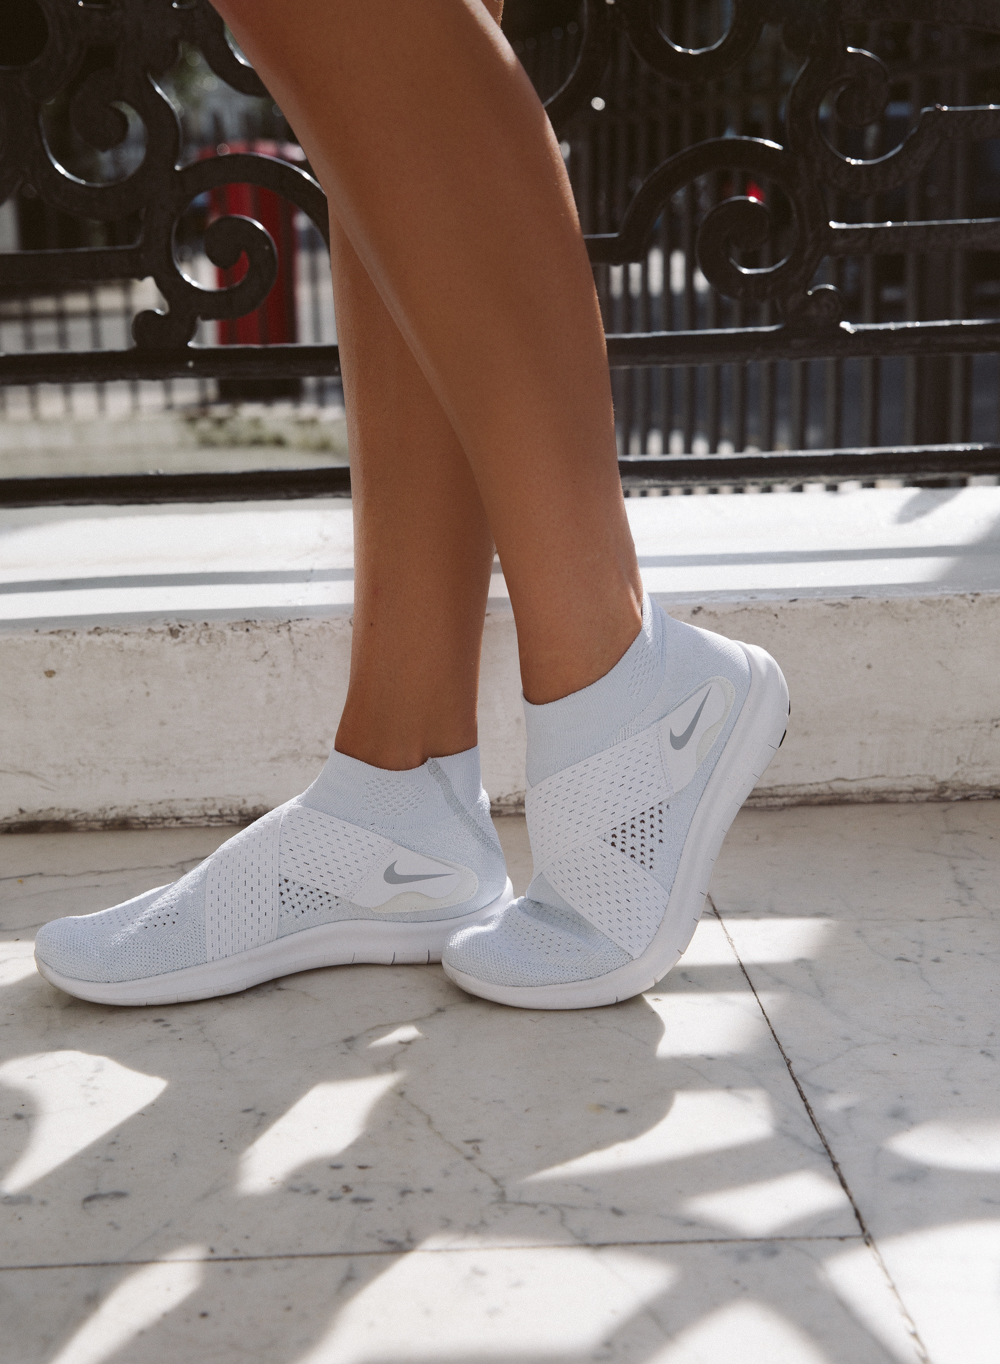 Flexible sneakers with no laces - perfect support for running